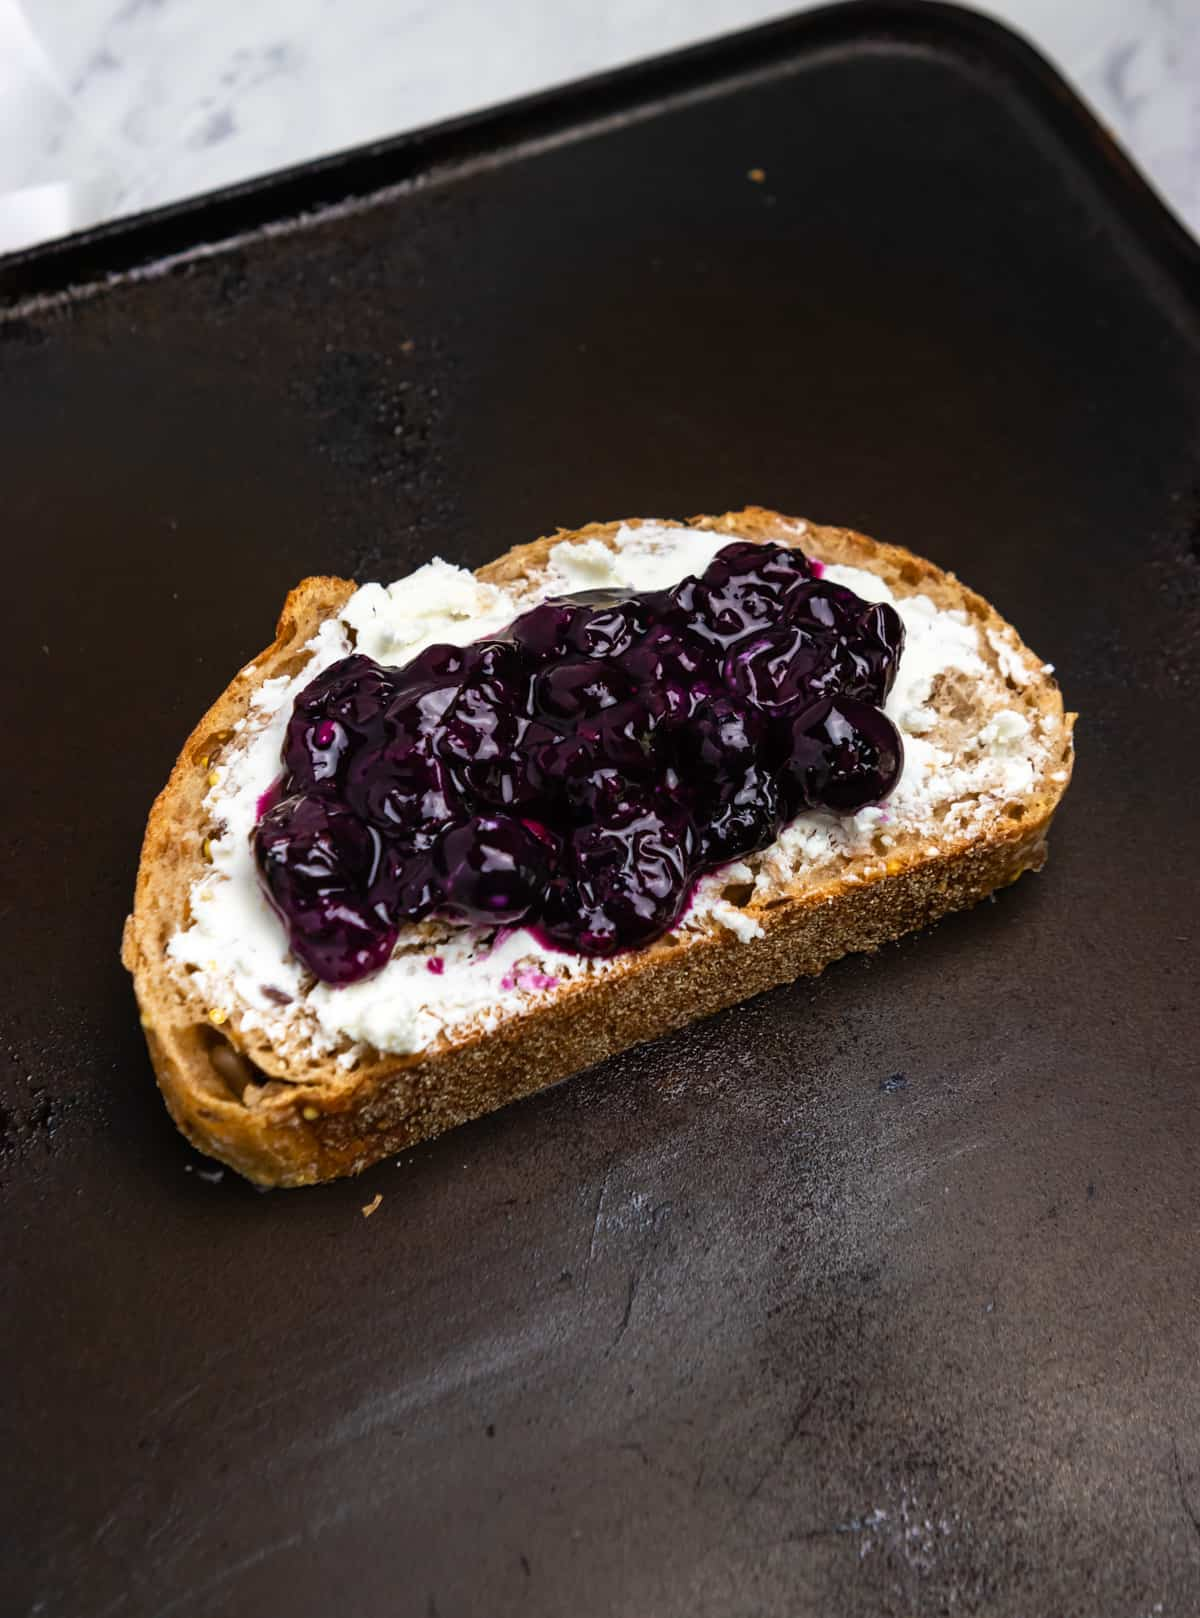 Goat cheese and blueberry sauce on bread on skillet.